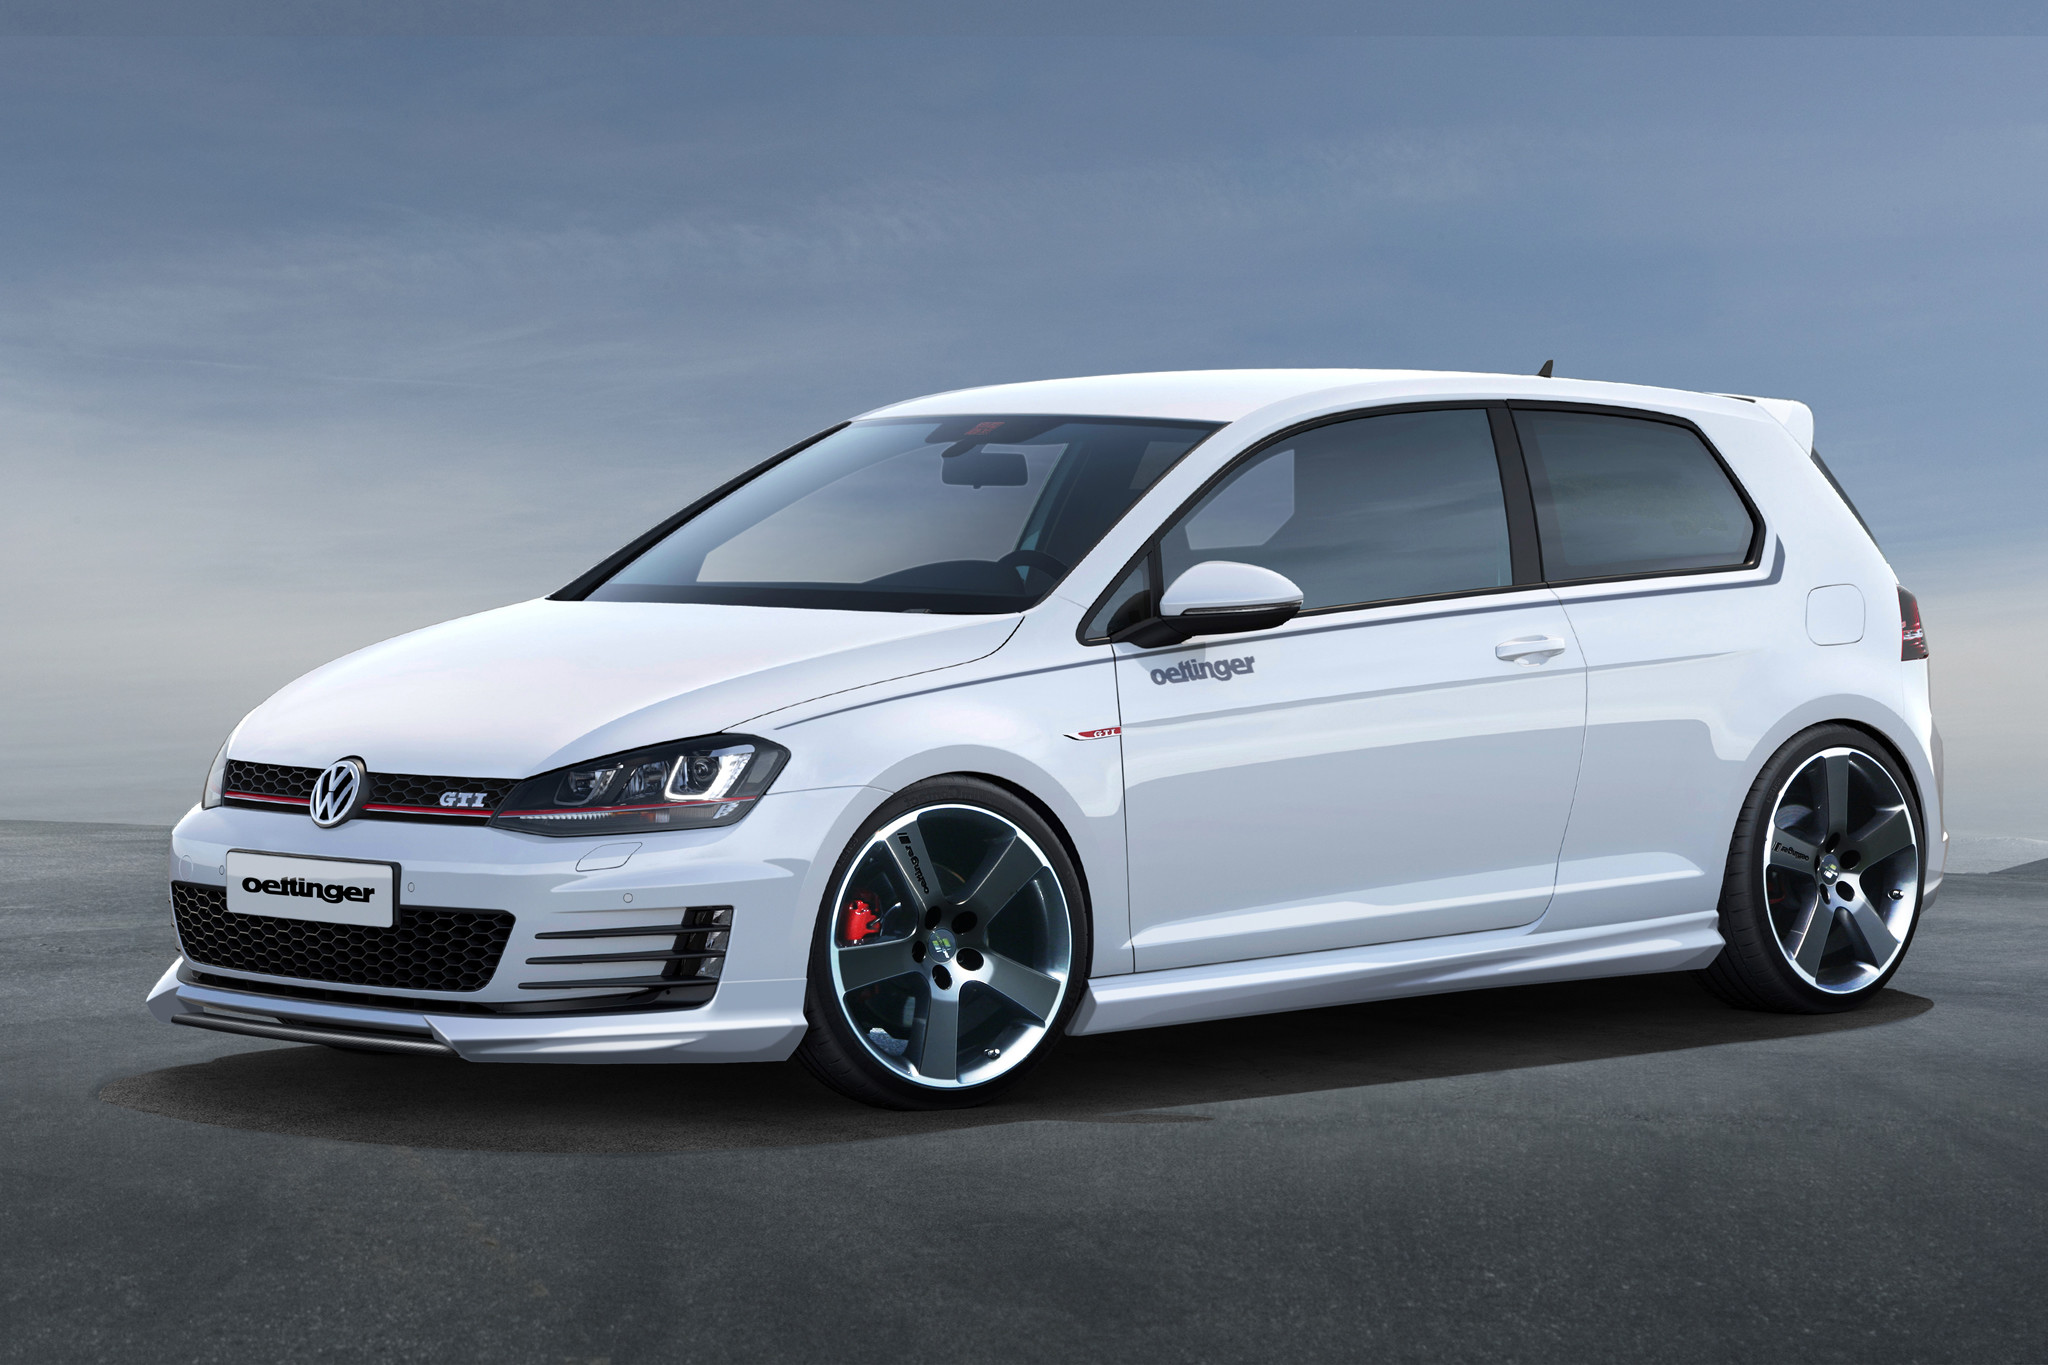 Res: 2048x1365, Volkswagen Golf GTI Mk7 Tuned by Oettinger Eurotuner View All Page